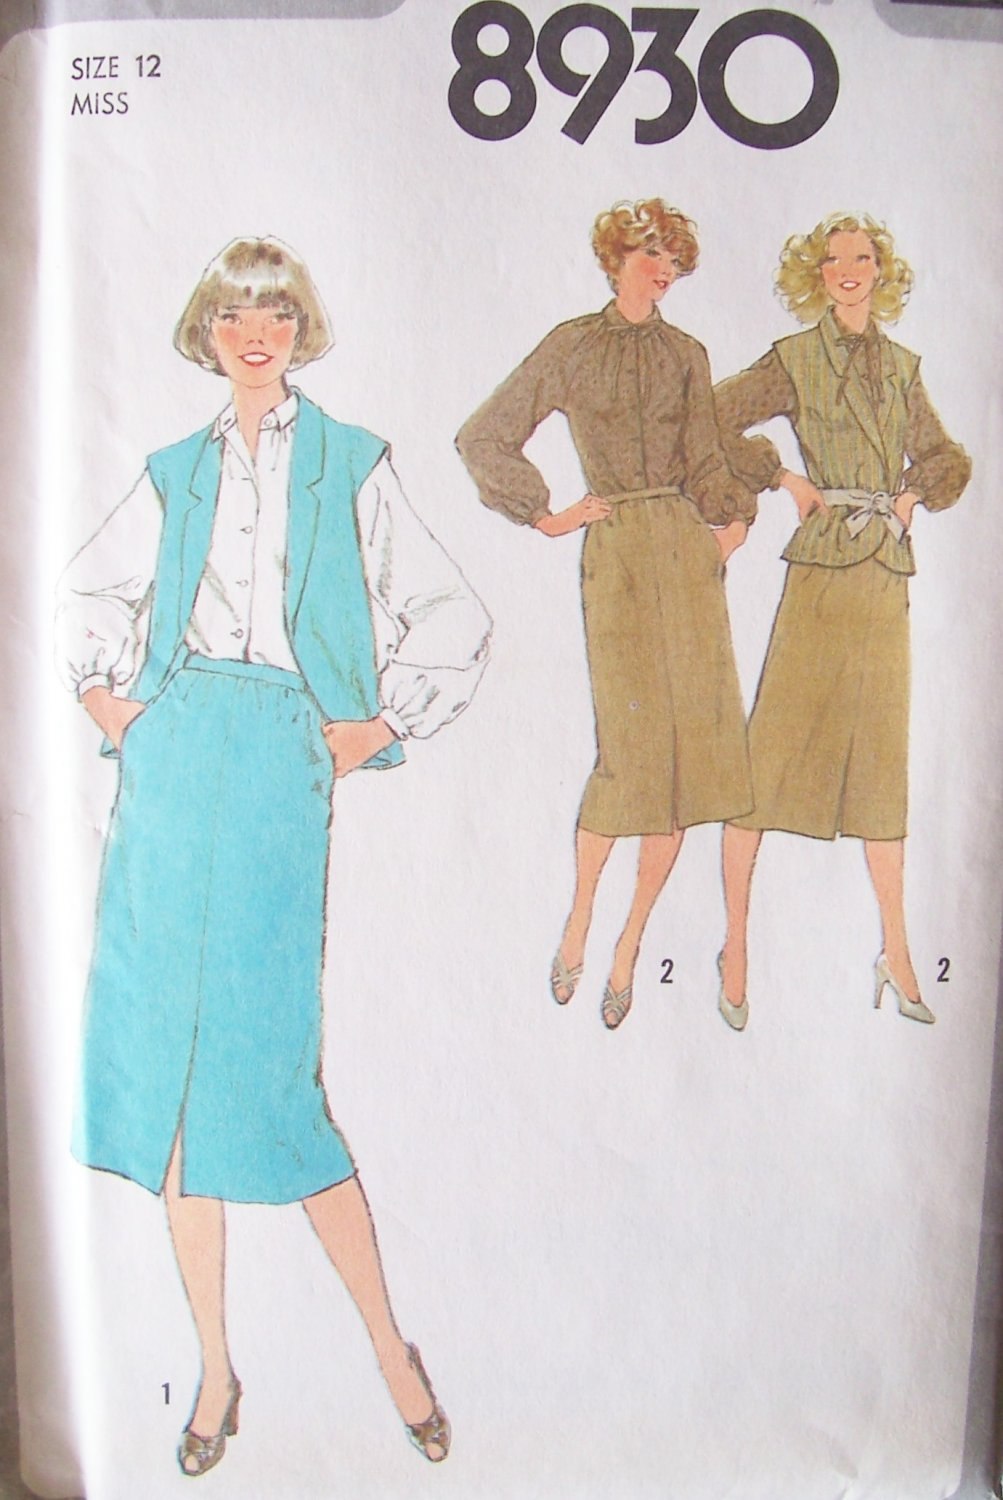 Vintage 70s Simplicity 8930 Shawl Collar Vest Skirt and Raglan Sleeve Blouse Pattern Uncut Size 12